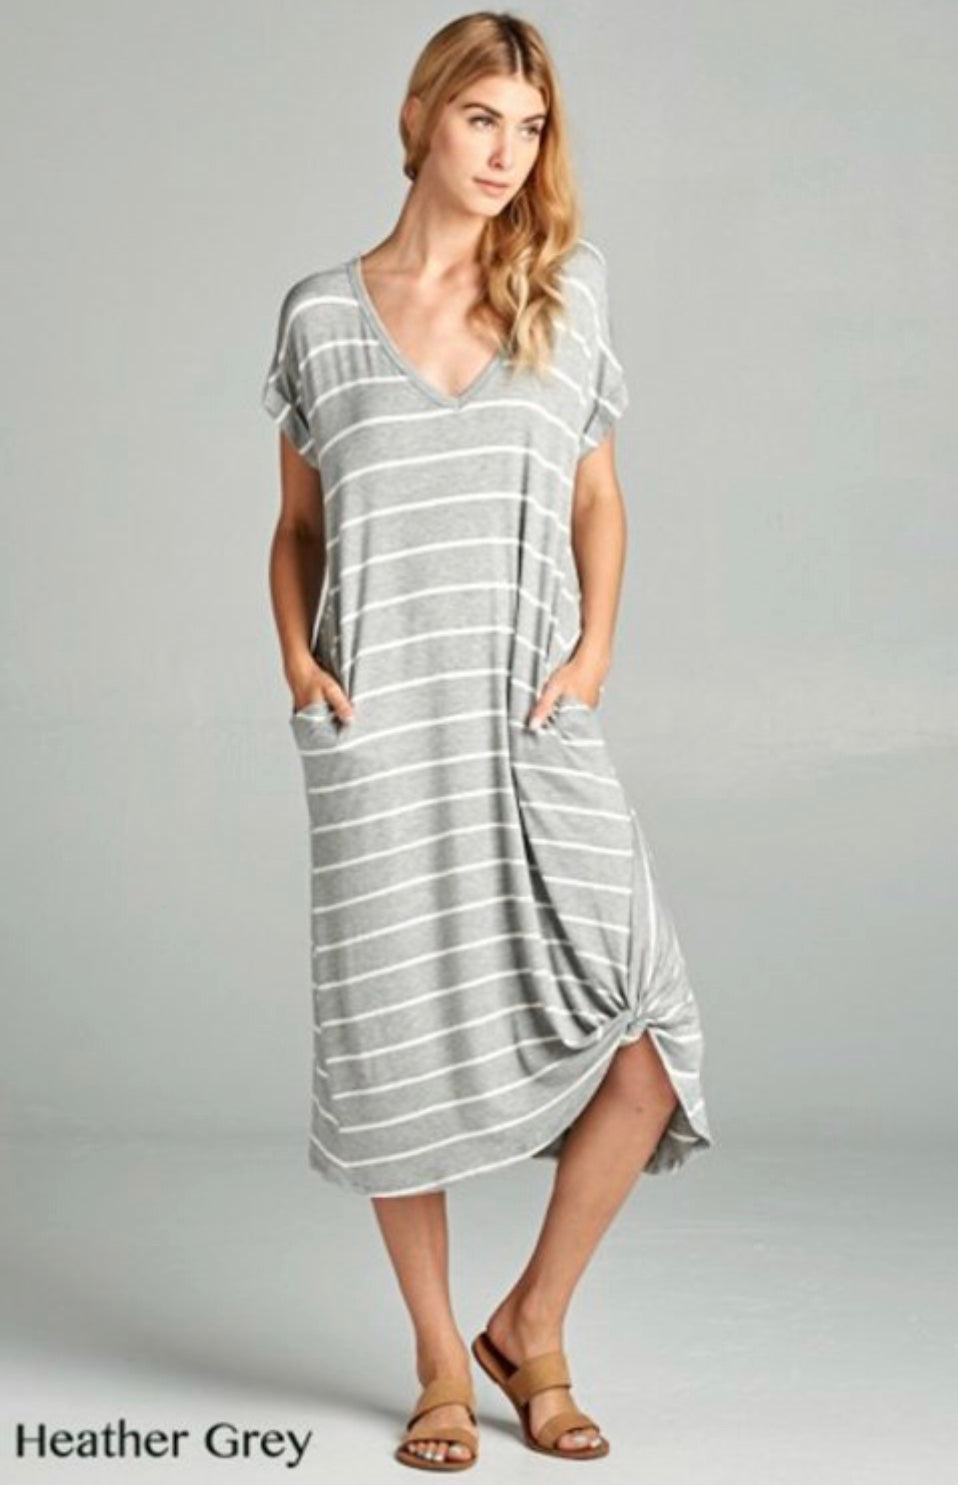 Heather Grey T-Shirt Dress